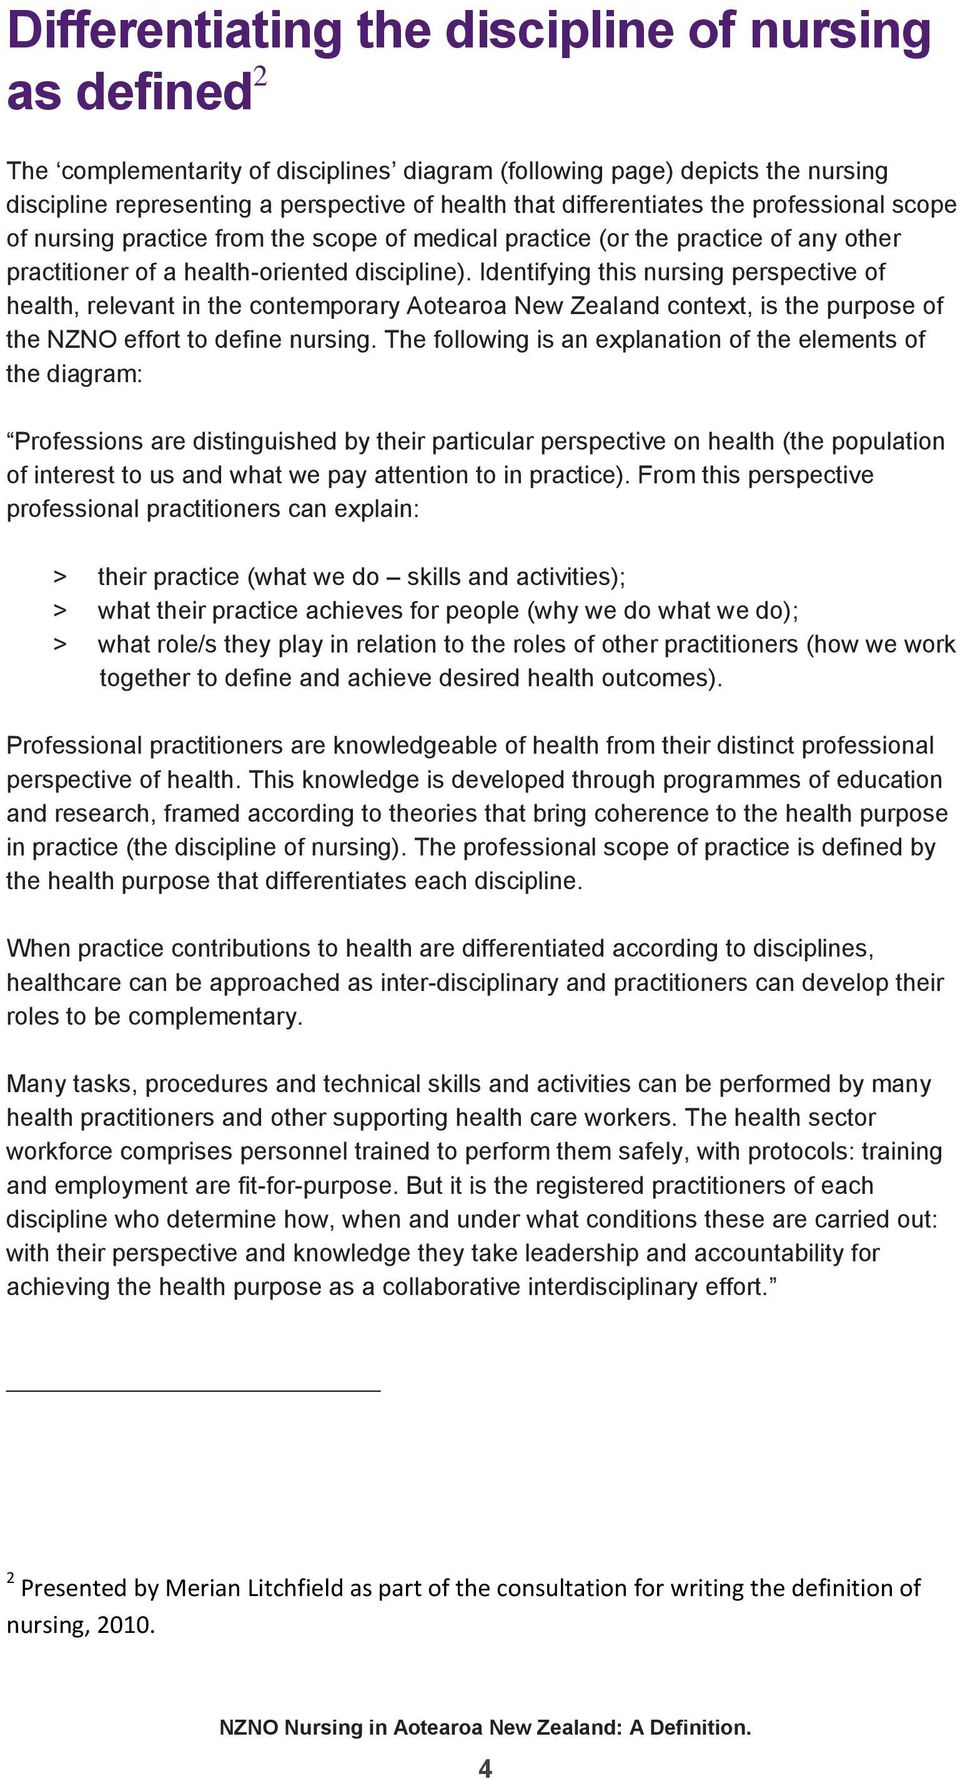 Identifying this nursing perspective of health, relevant in the contemporary Aotearoa New Zealand context, is the purpose of the NZNO effort to define nursing.